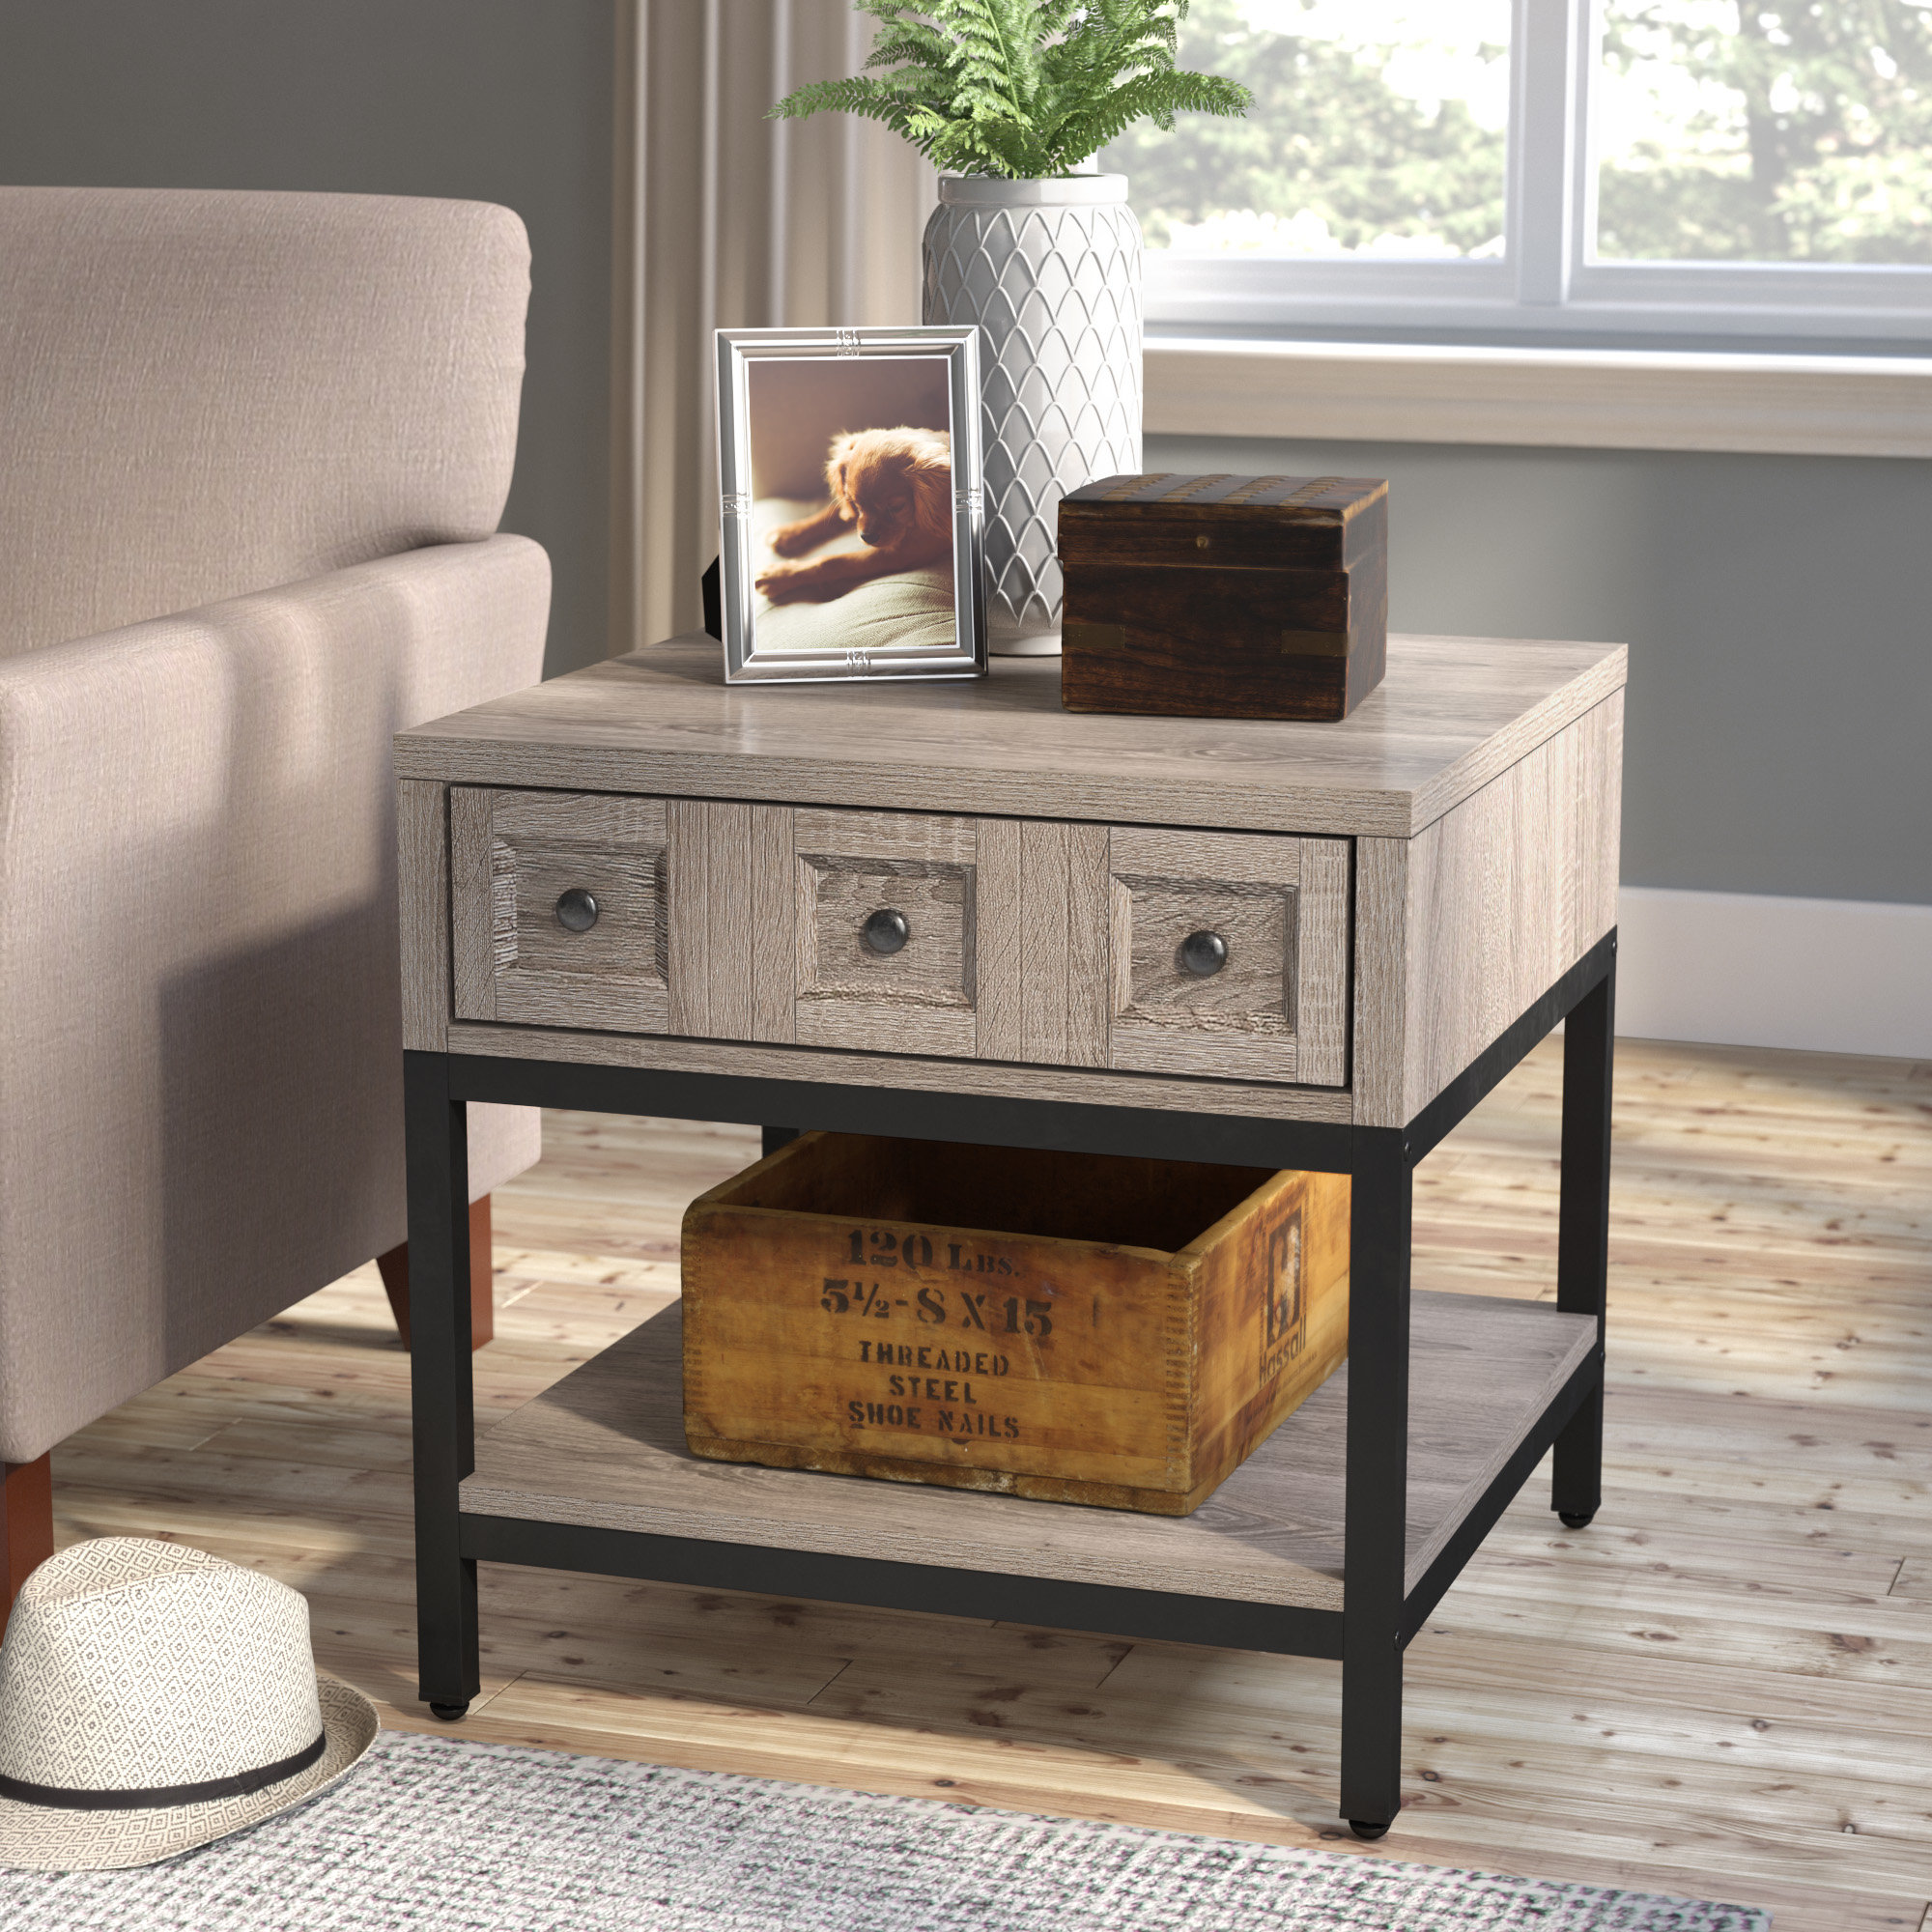 laurel foundry modern farmhouse omar end table with storage tables furniture reviews shade floor lamp craigslist dining antique primitive ashley queen set log living room paint